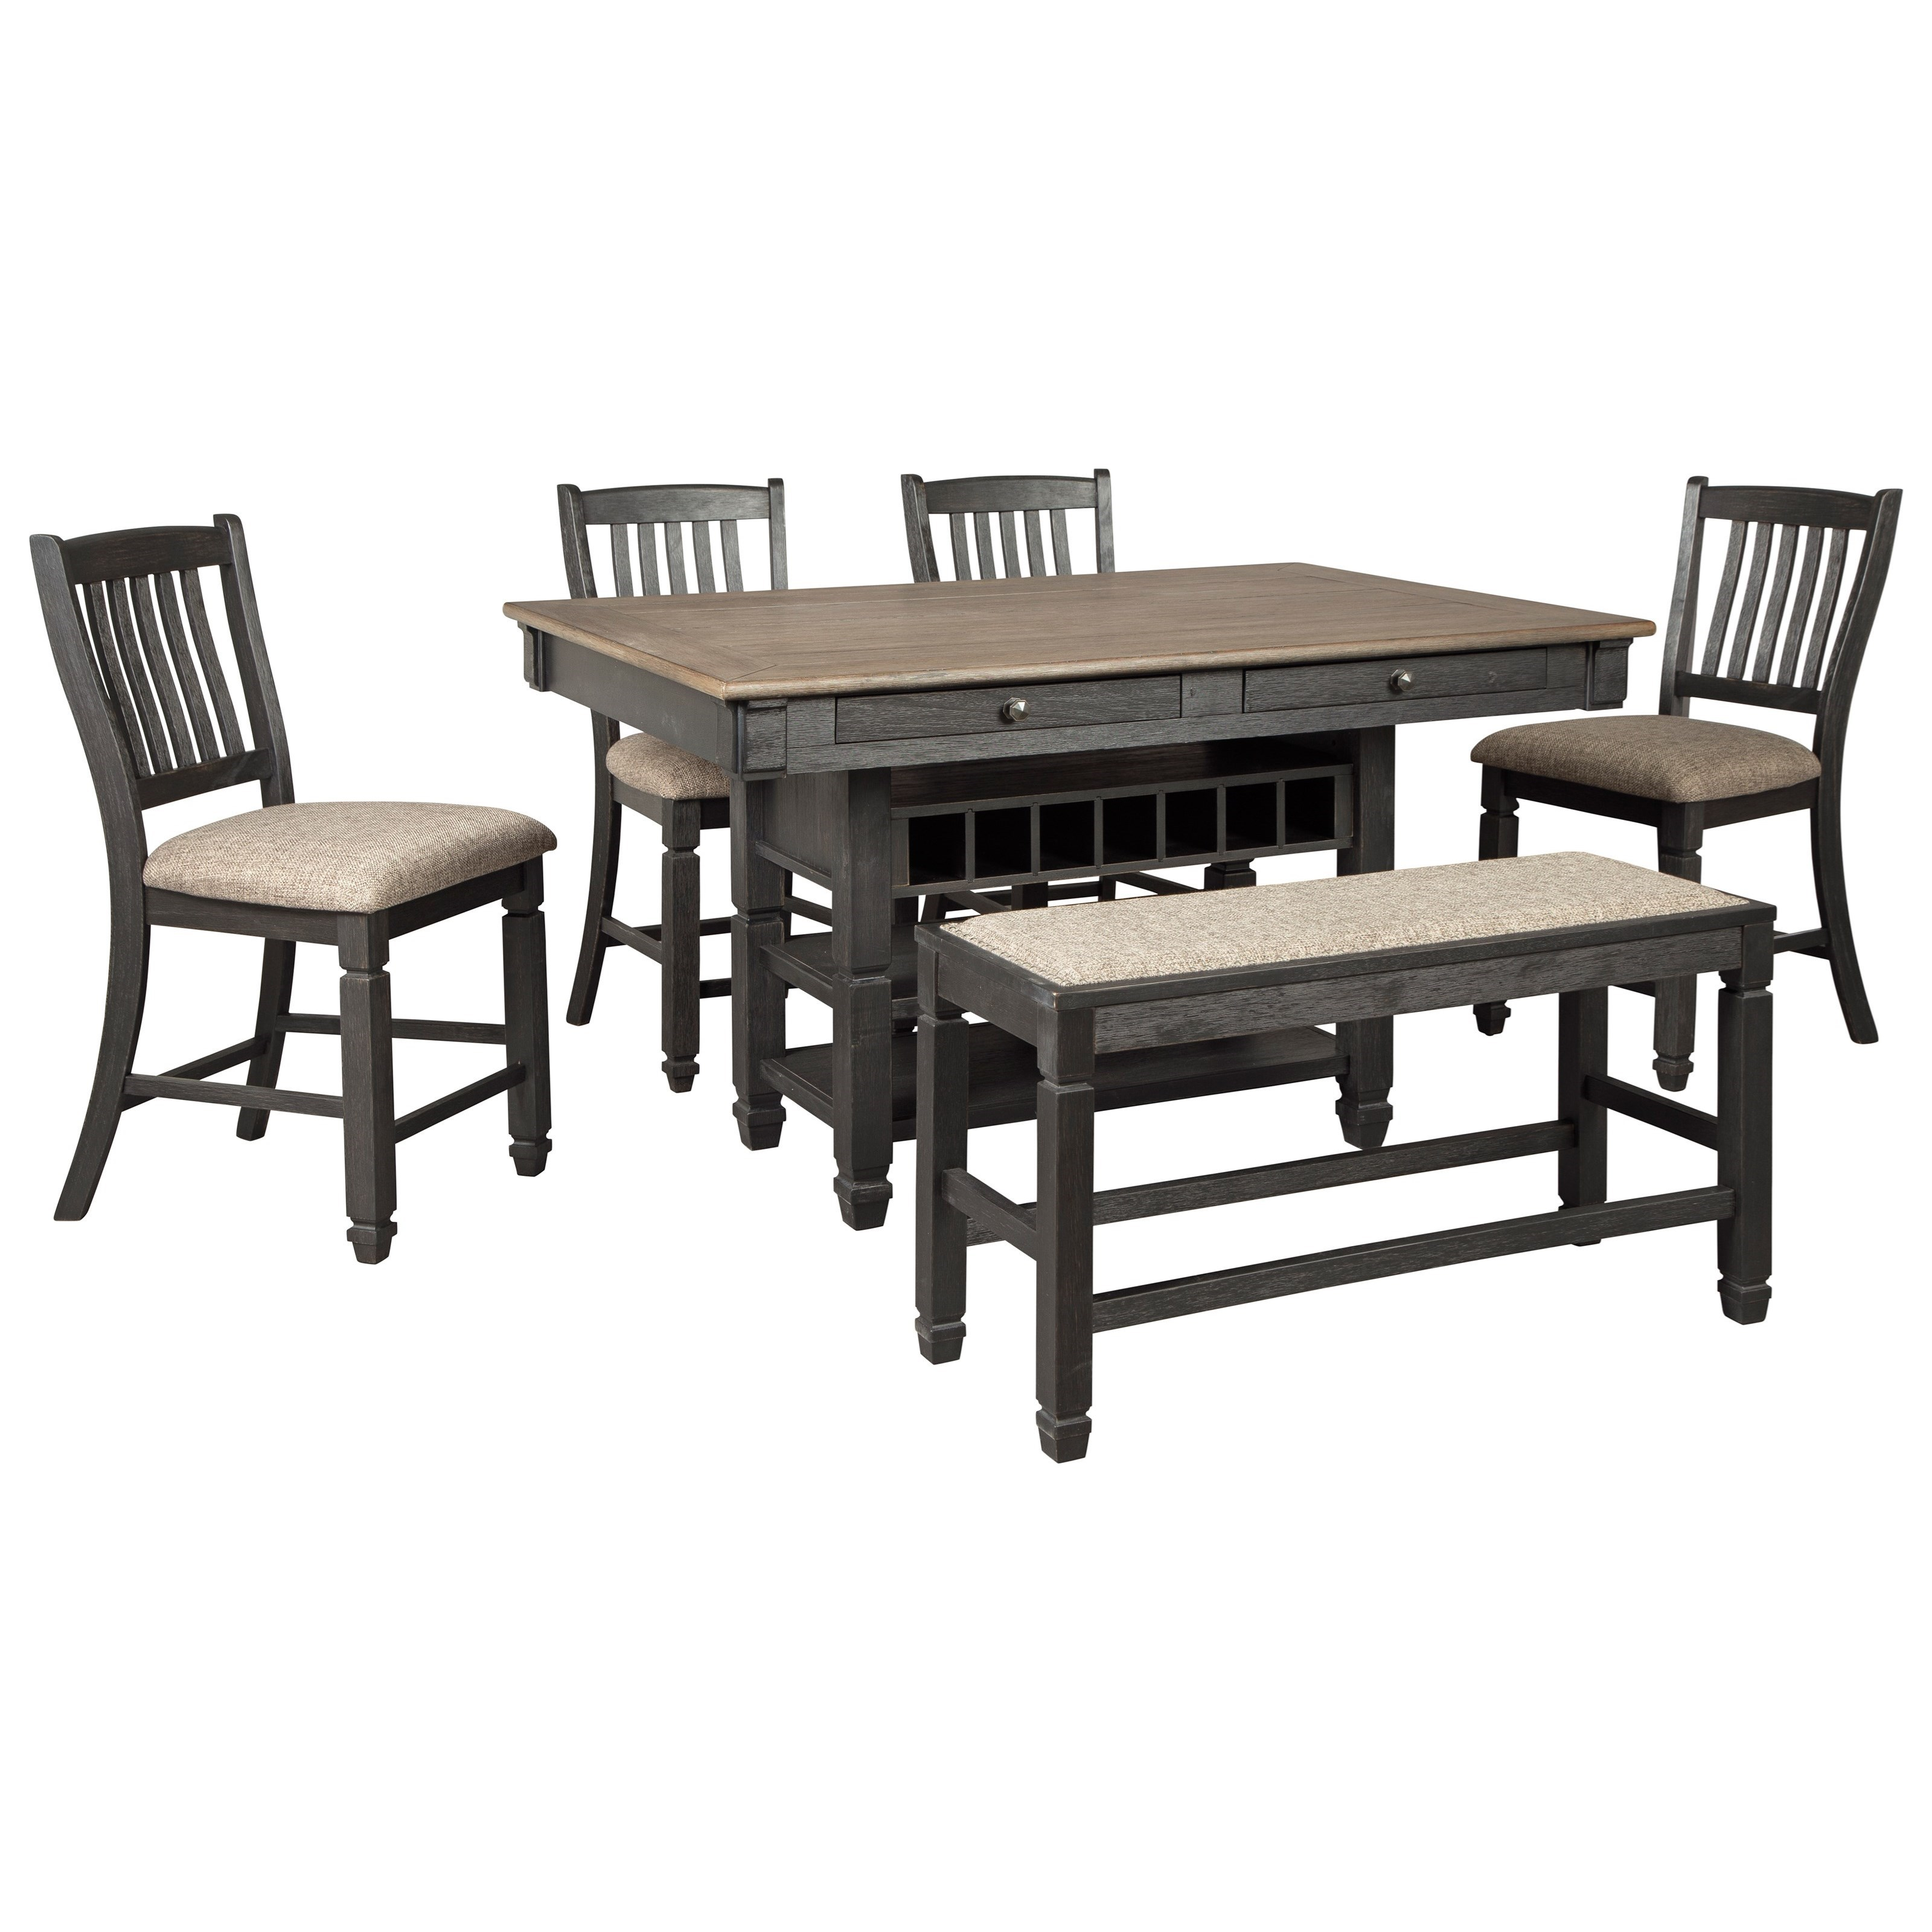 Tyler Creek 6-Piece Counter Table Set with Bench by Signature Design by Ashley at Sparks HomeStore